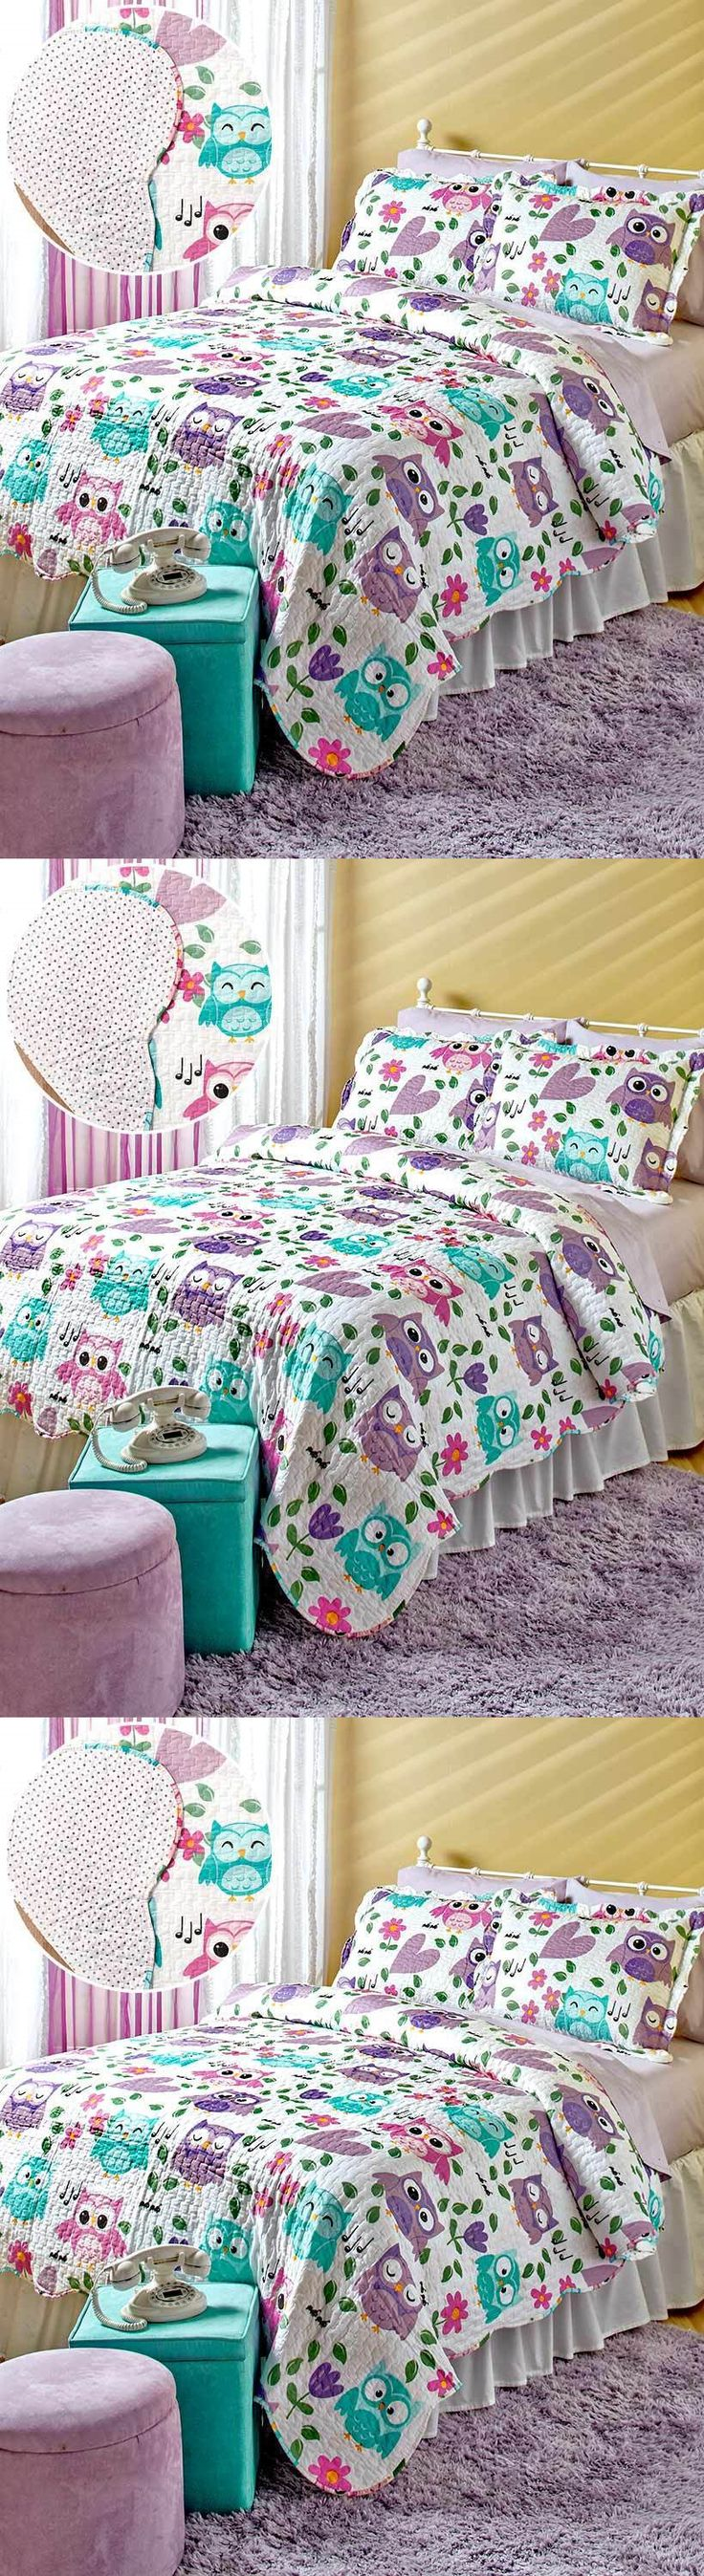 Kids At Home: Owl Quilt Sets Twin Full Queen Teens Bedroom Kids Girls Owls  Decor